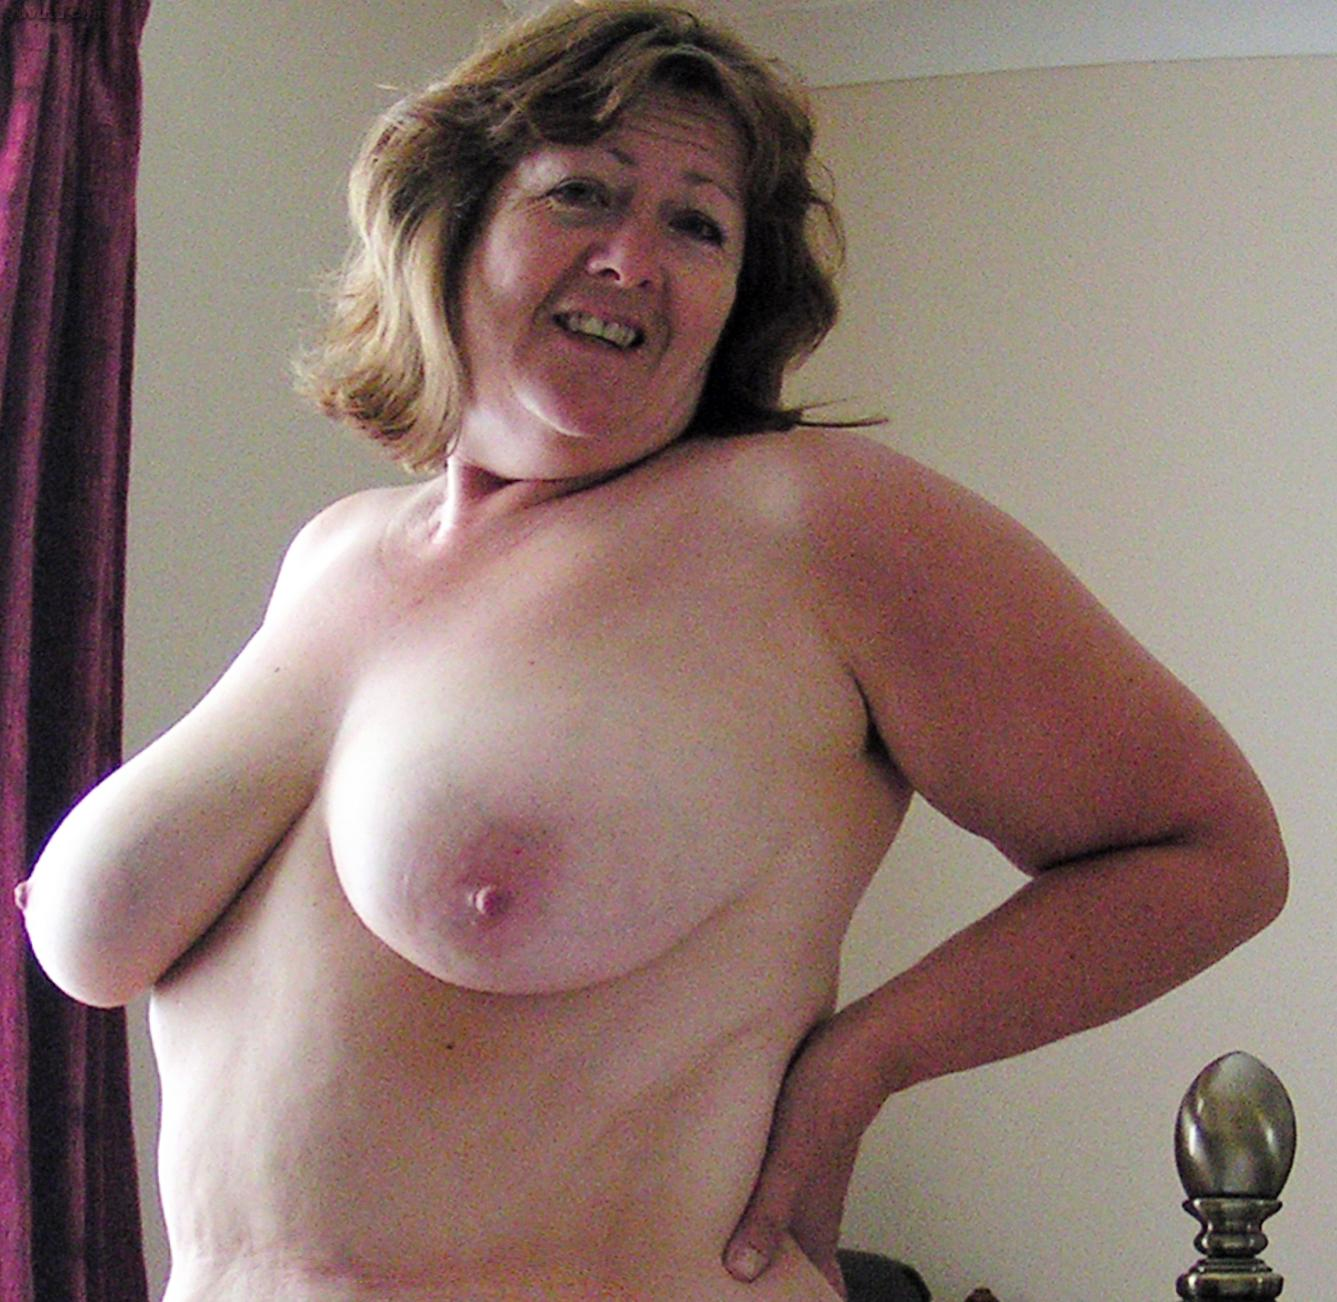 Homemade chubby sex pics older women